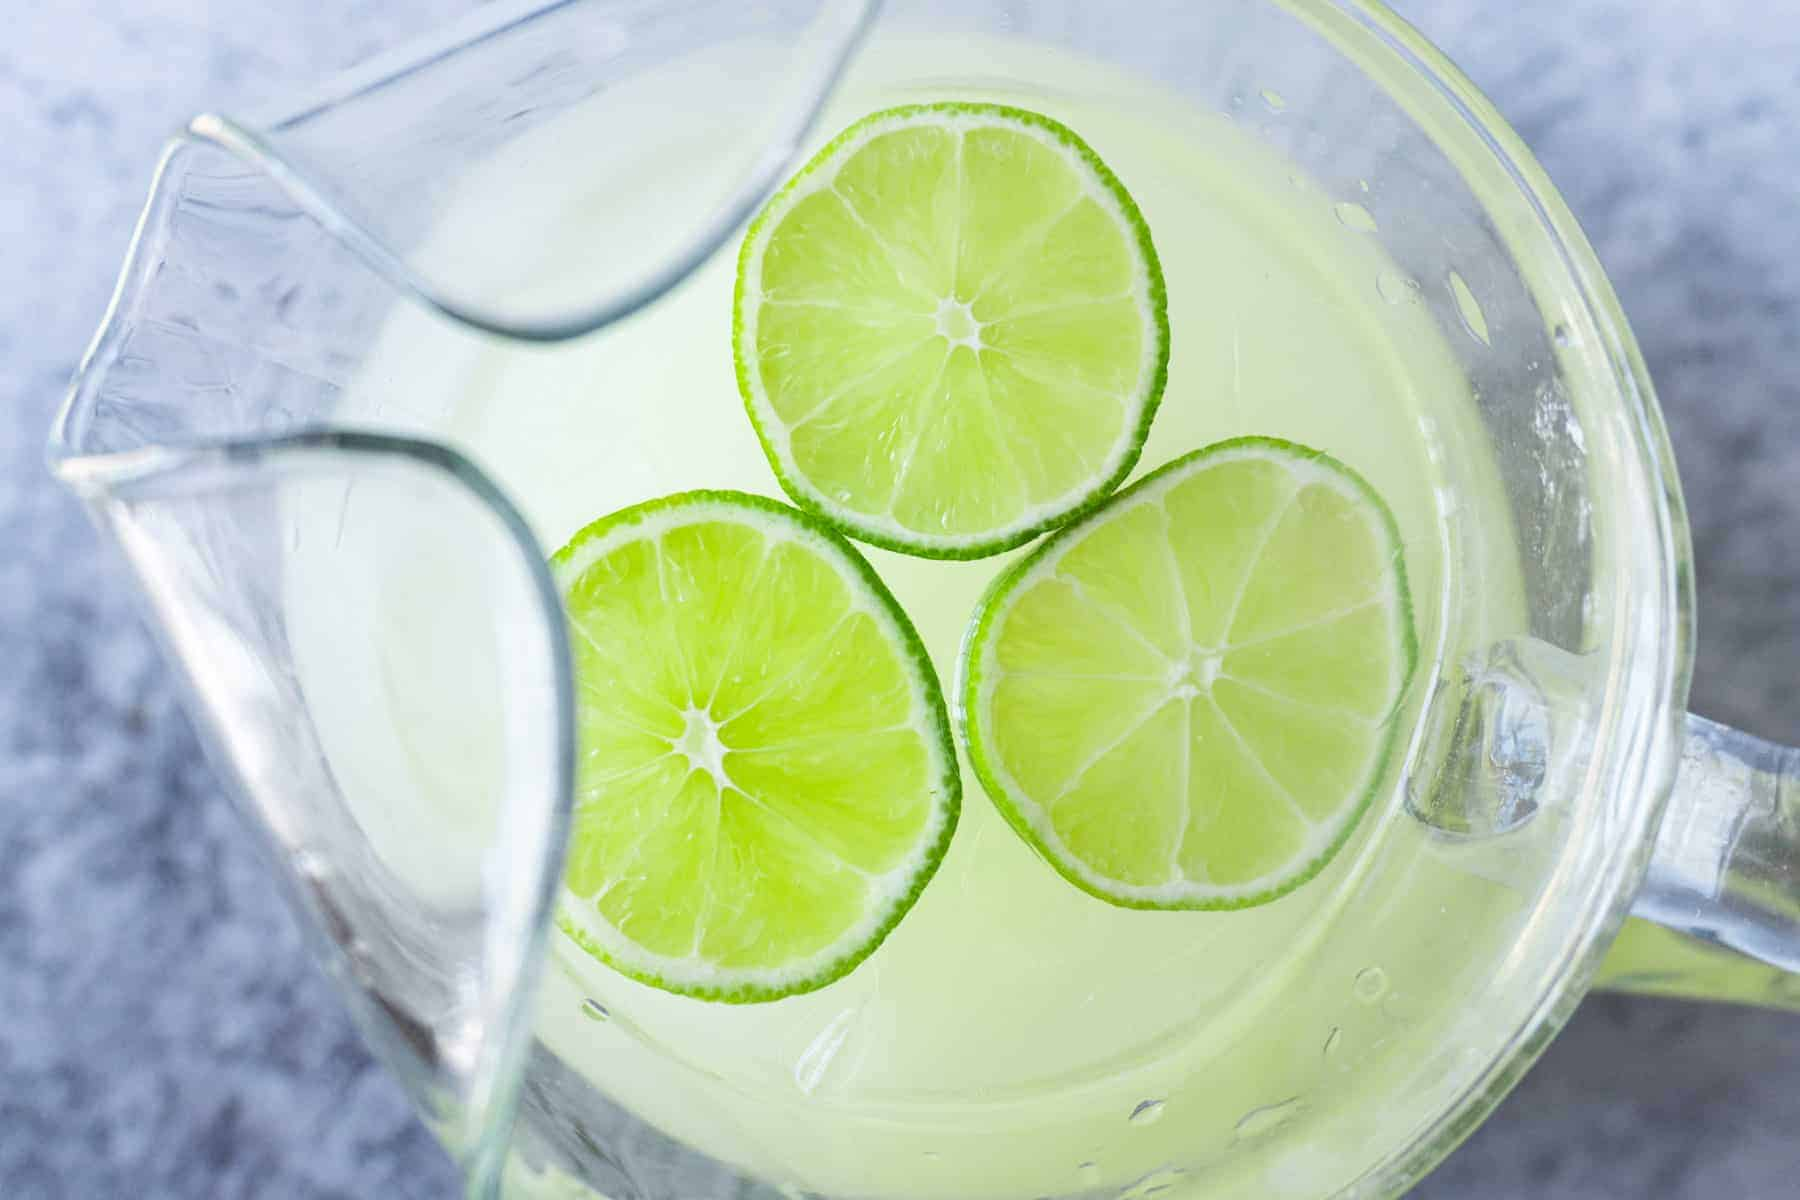 Pitcher of limeade with lime wedges